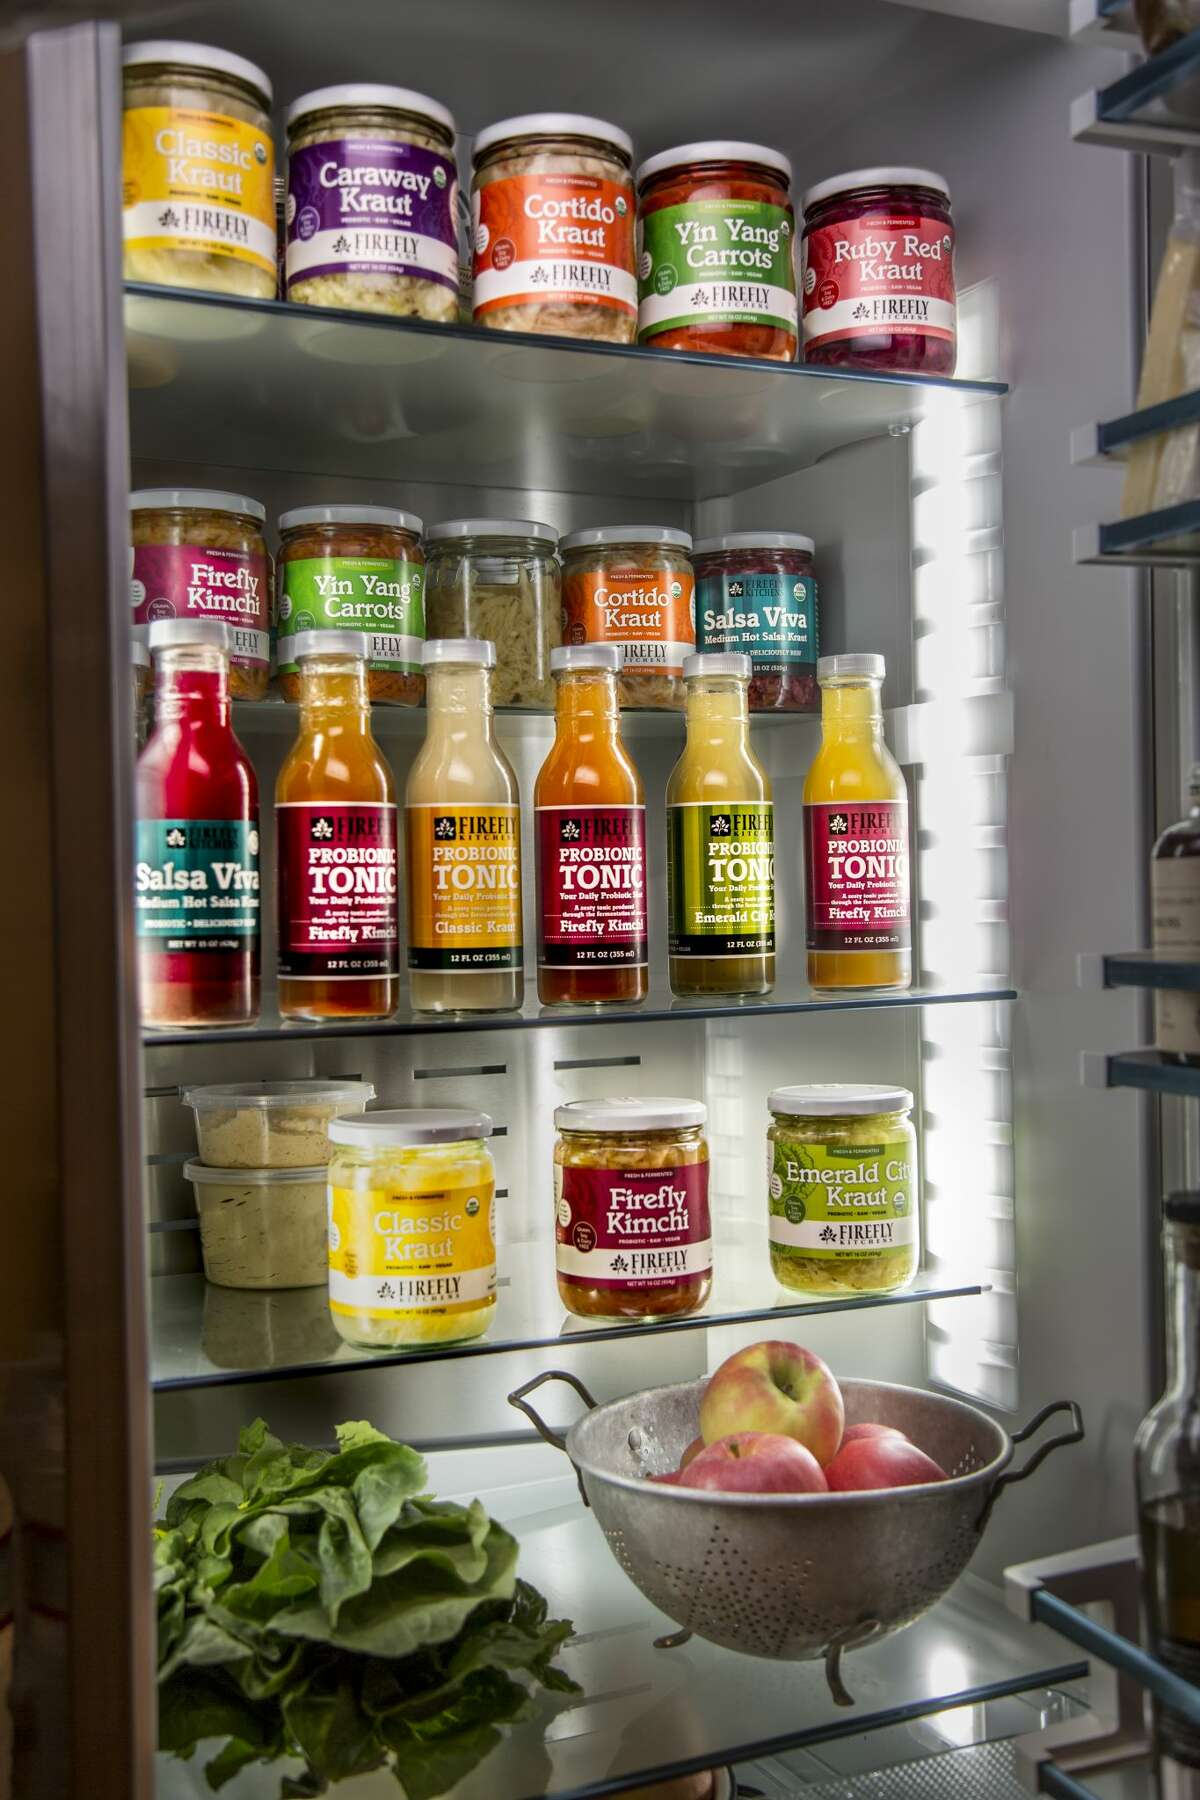 Firefly Kitchens divvies out krauts, kimchi, tonics, and more.